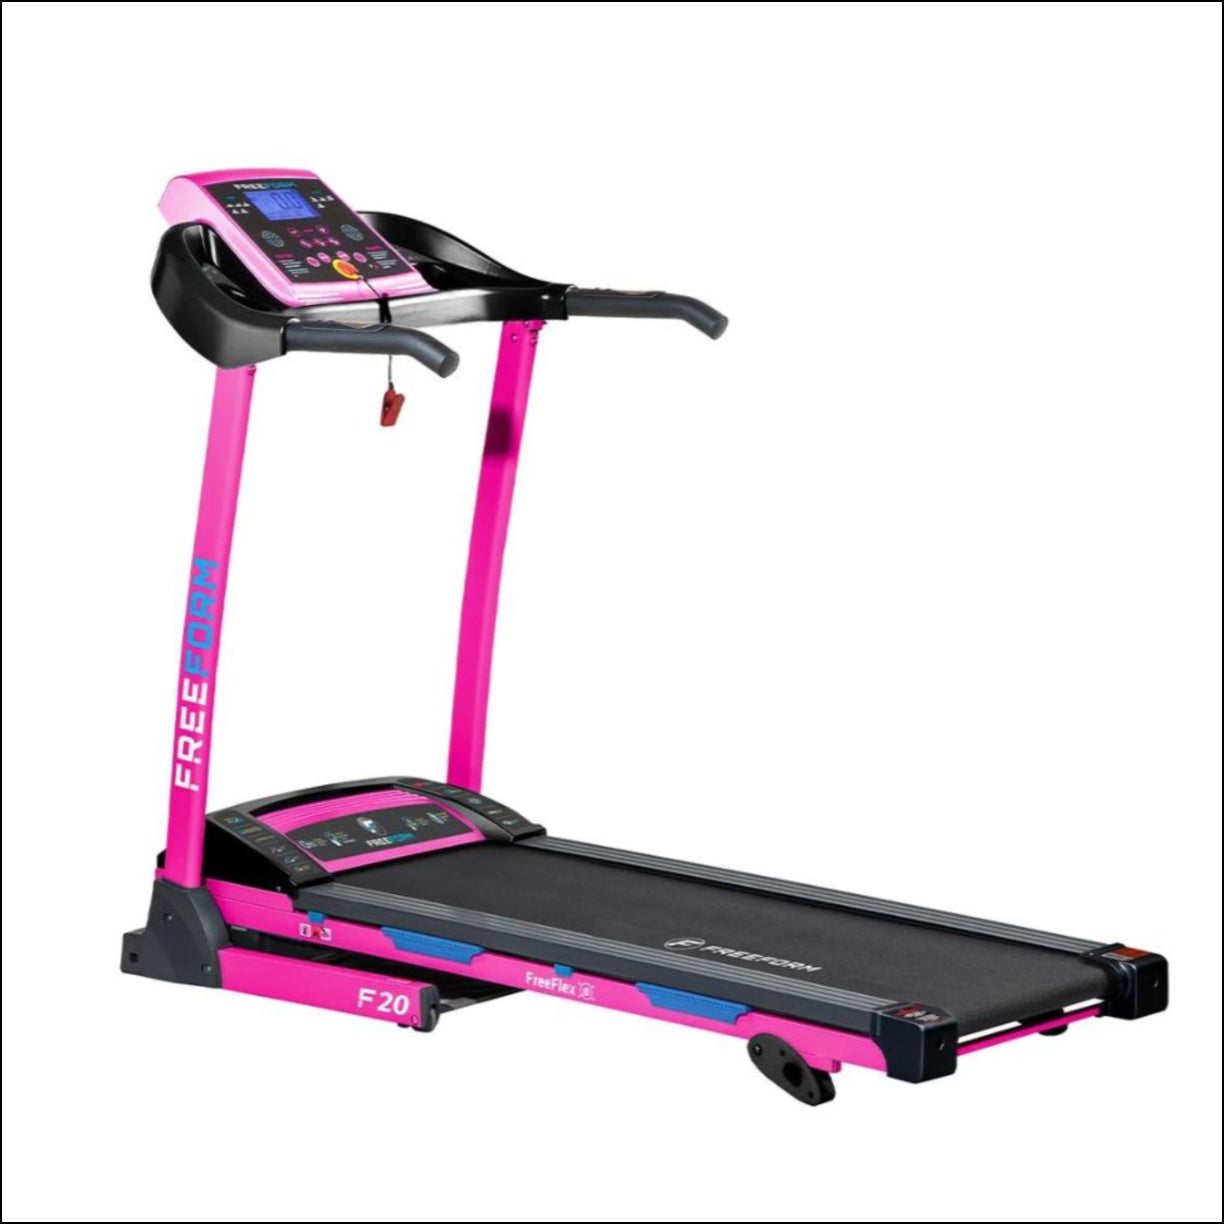 Designed to help you achieve your fitness goals in the comfort of your home! The Freeform F20 Treadmill has 9 preset programs and 3 manually adjustable incline options so you can tone your figure and work on your overall fitness. Other features include FreeFlex precision cushioning for ultimate comfort and simple foldaway design.